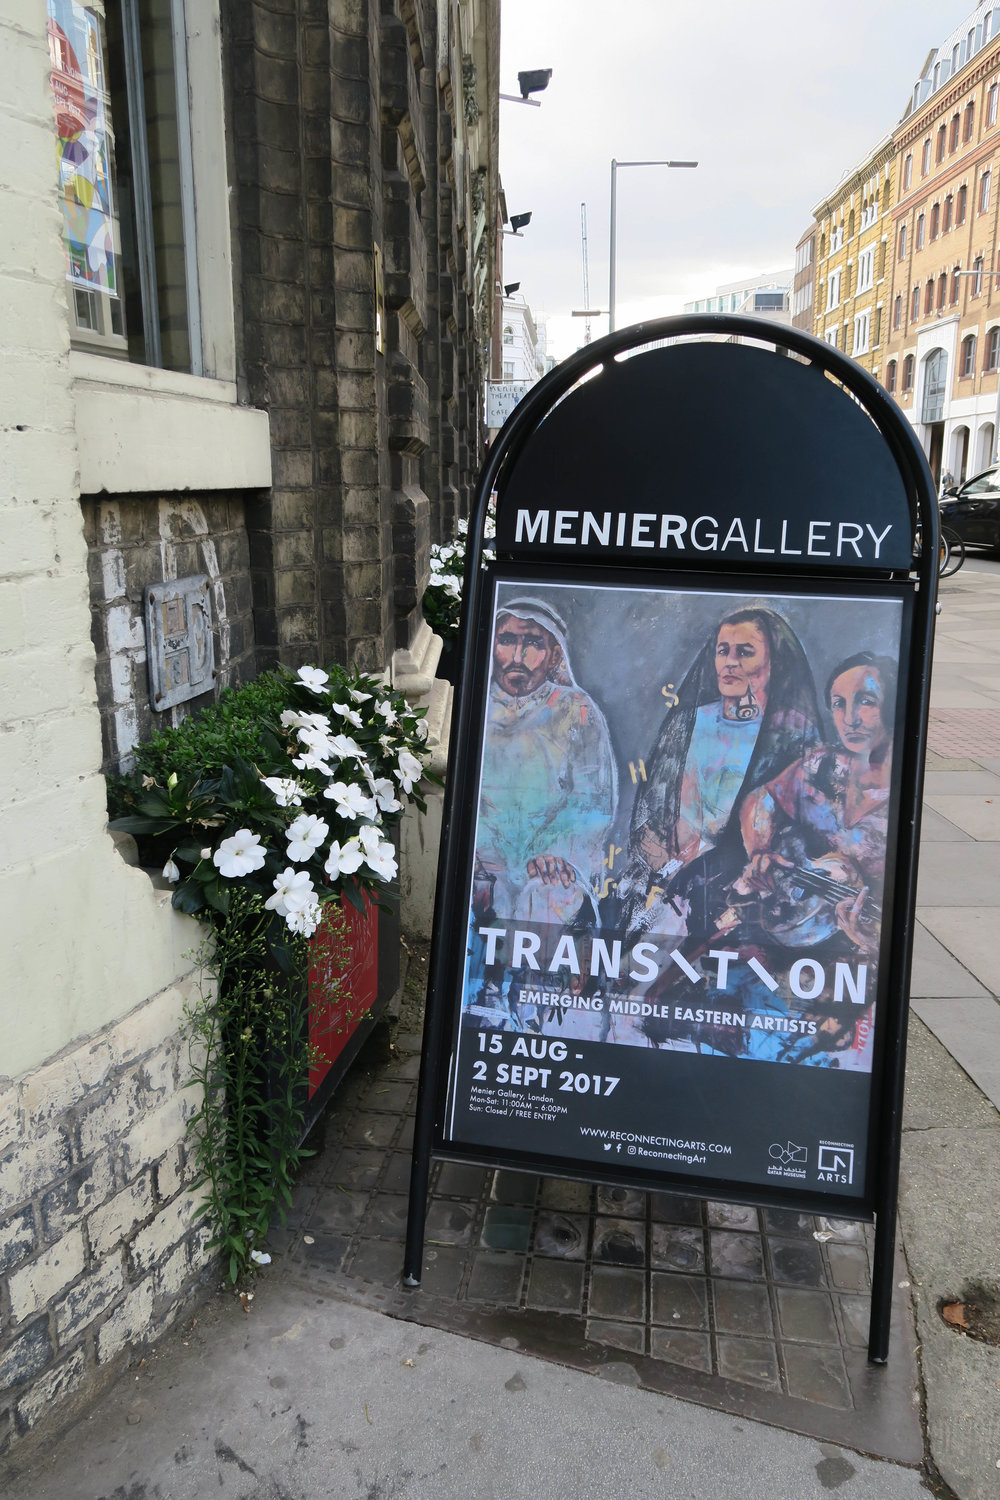 Transition Exhibition in Menier Gallery